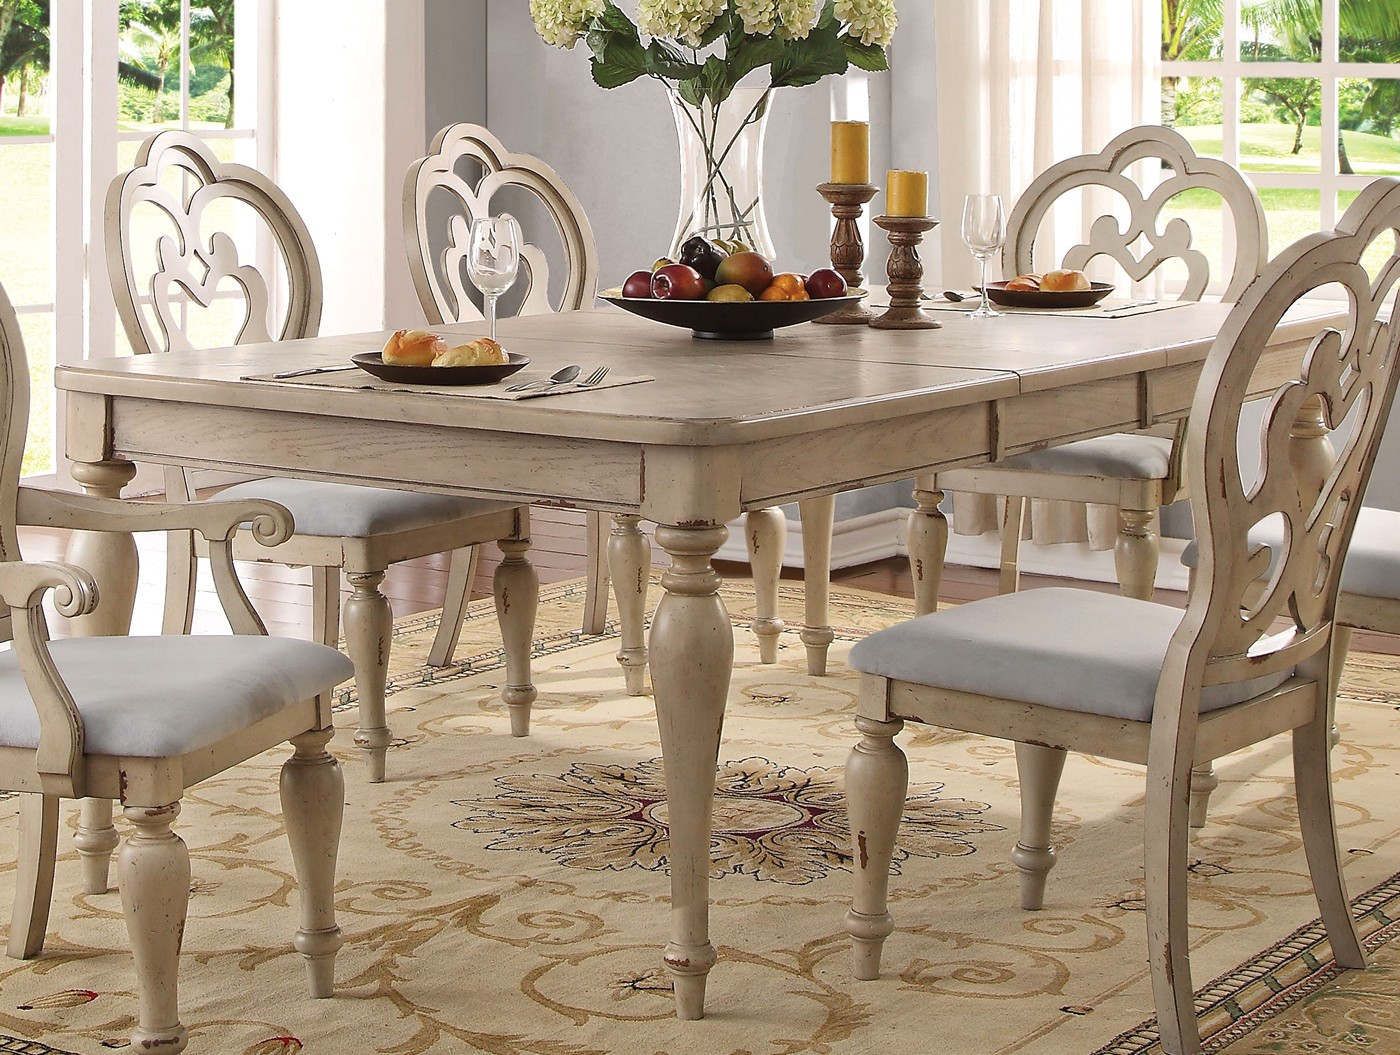 Best ideas about Country Dining Table . Save or Pin French Country Dining Table Set Now.